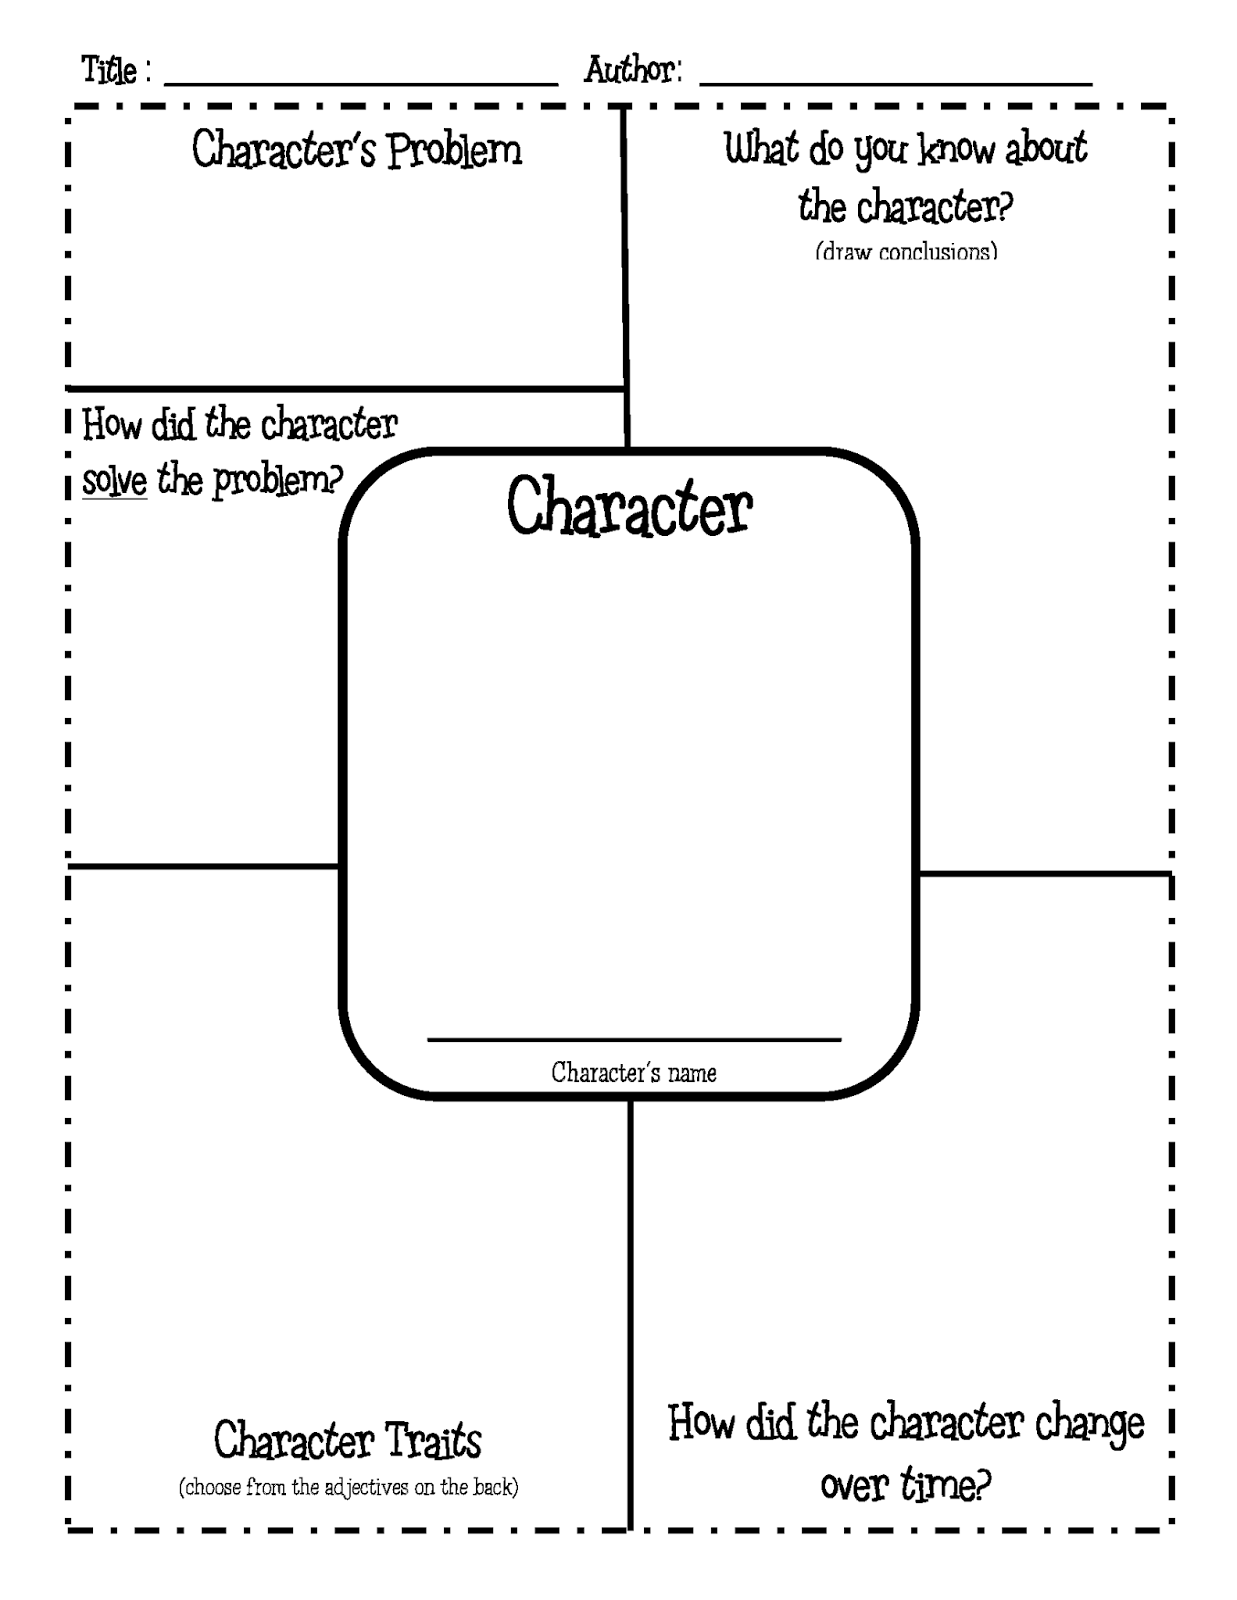 a character analysis of various storys main characters